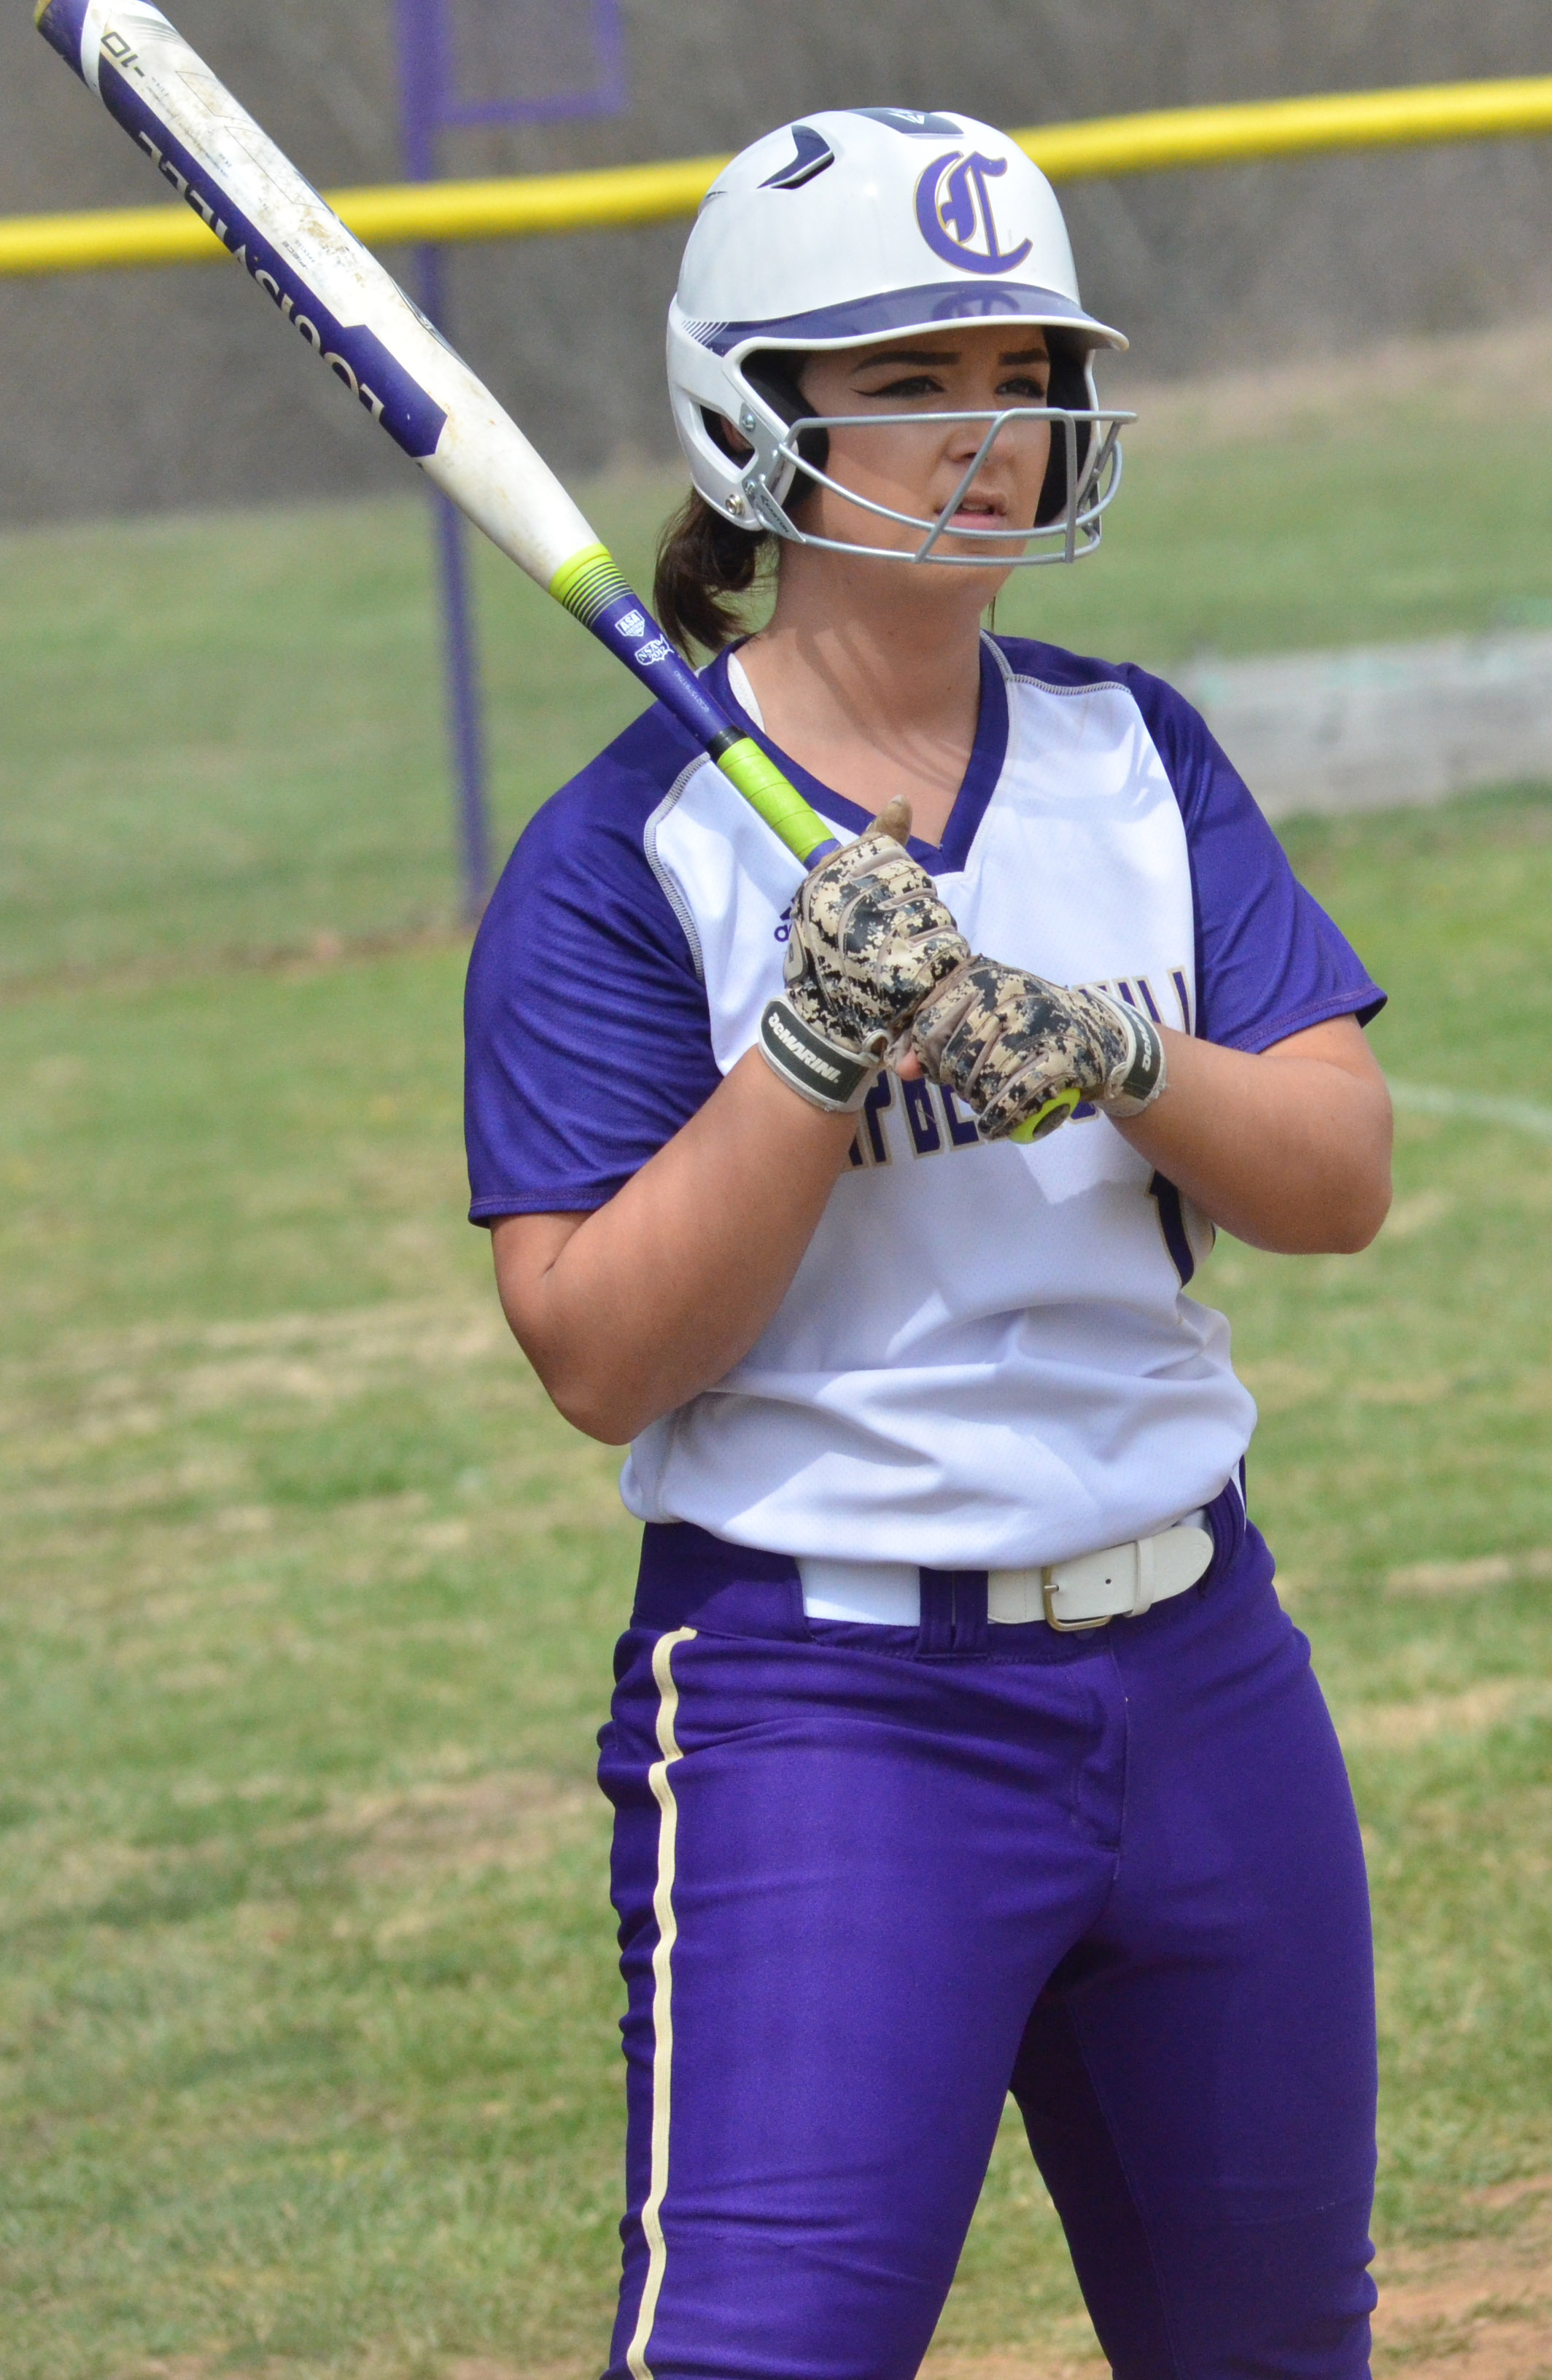 CHS senior Kailey Morris waits to bat.